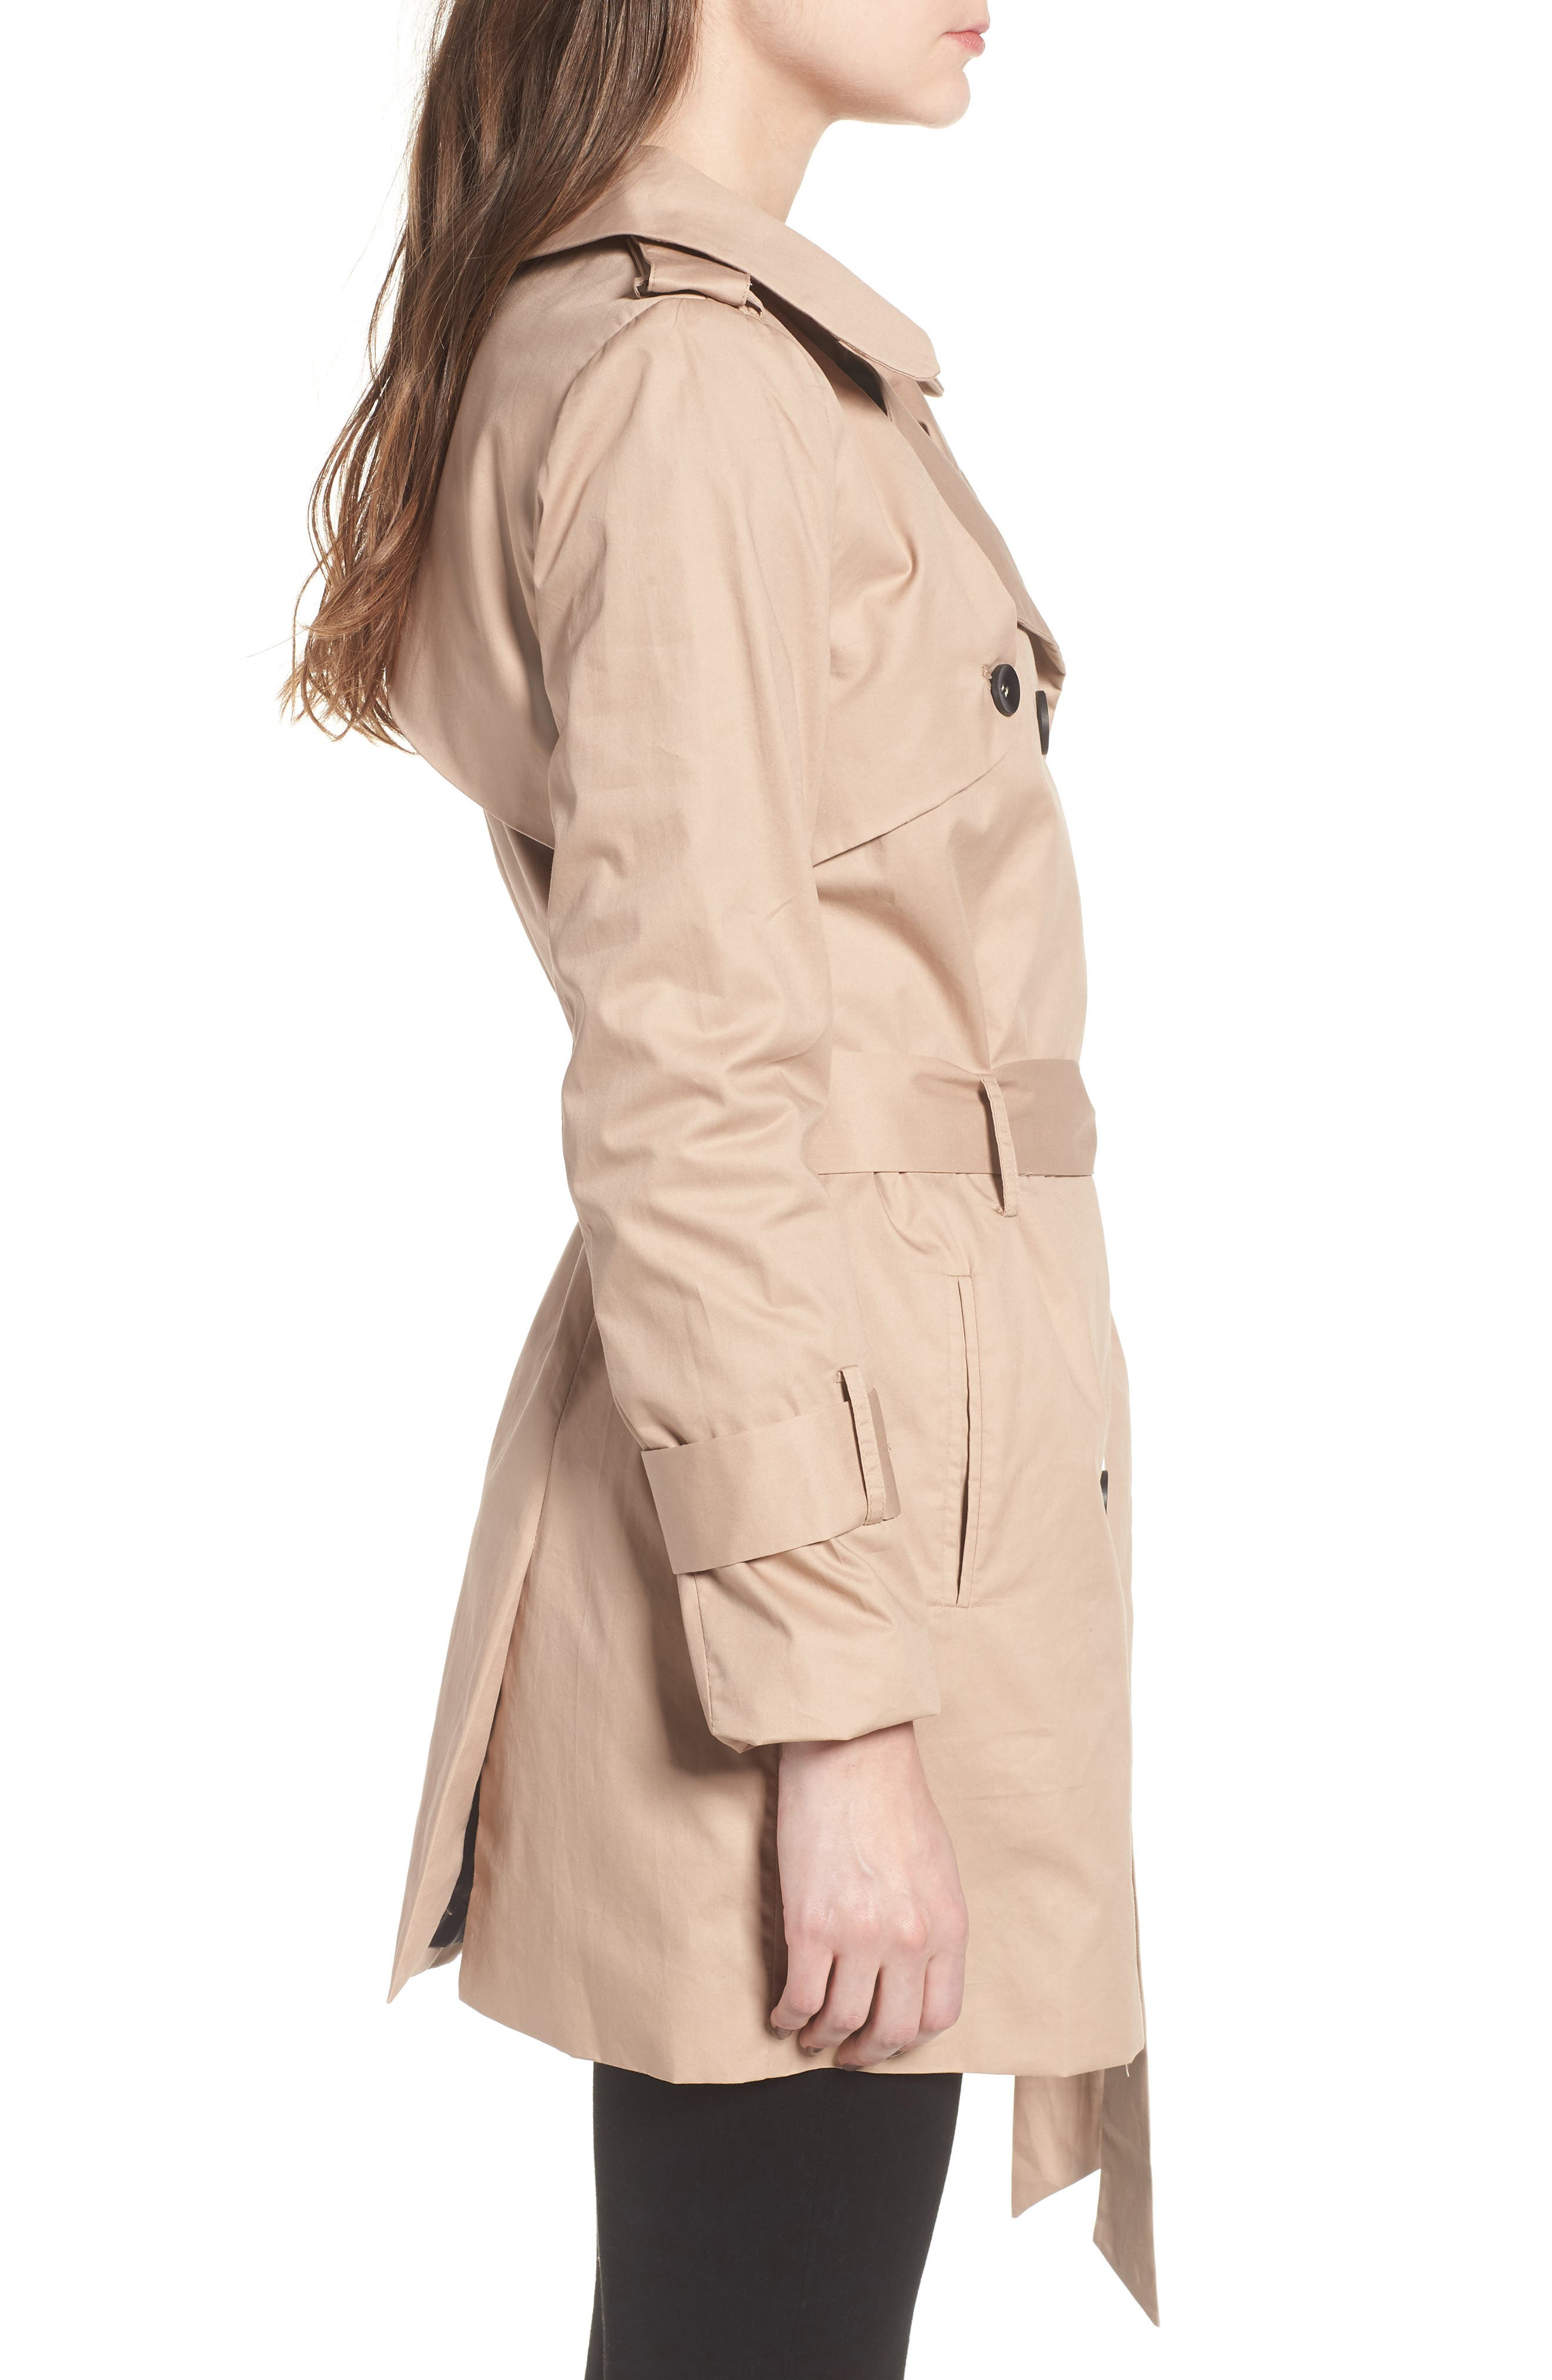 Moss Trench Coat,                             Alternate thumbnail 3, color,                             250